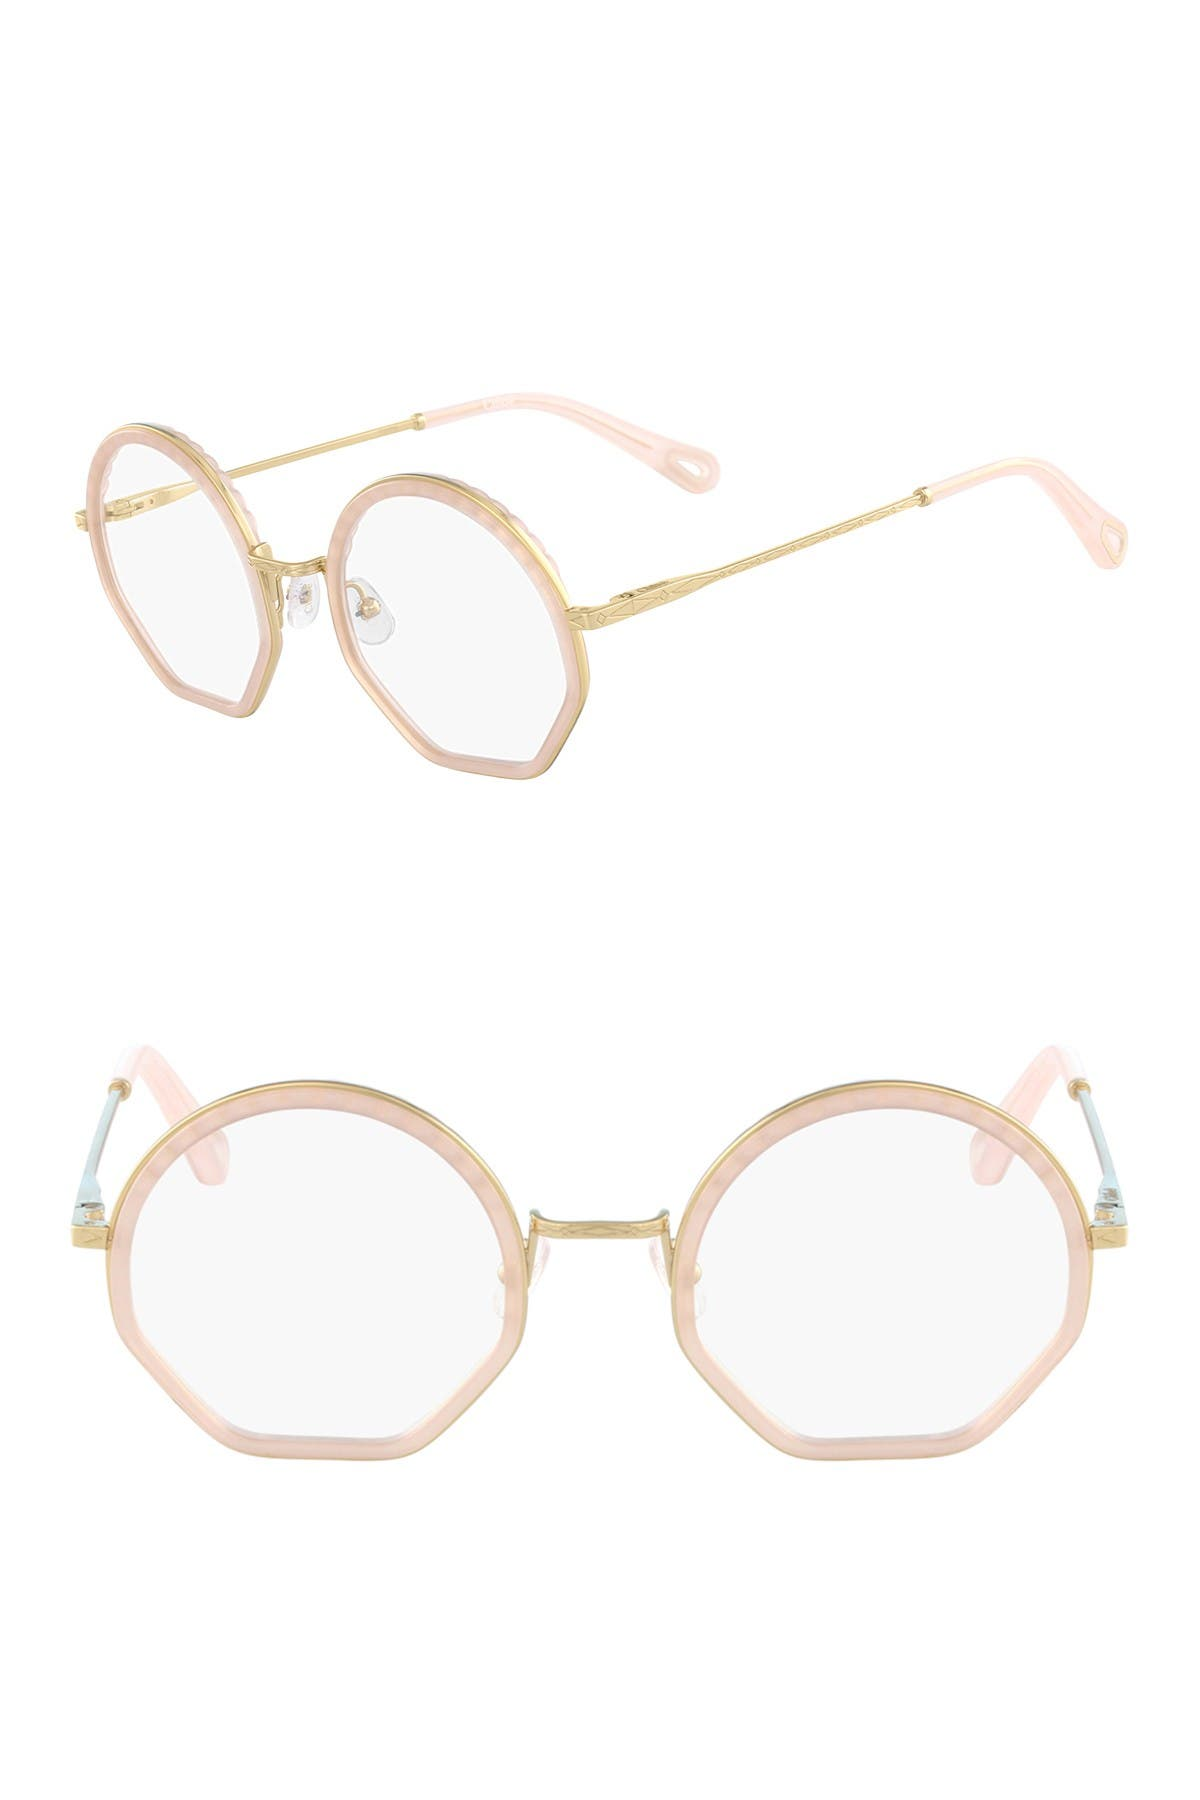 Chloé 50MM ROUND OPTICAL FRAMES